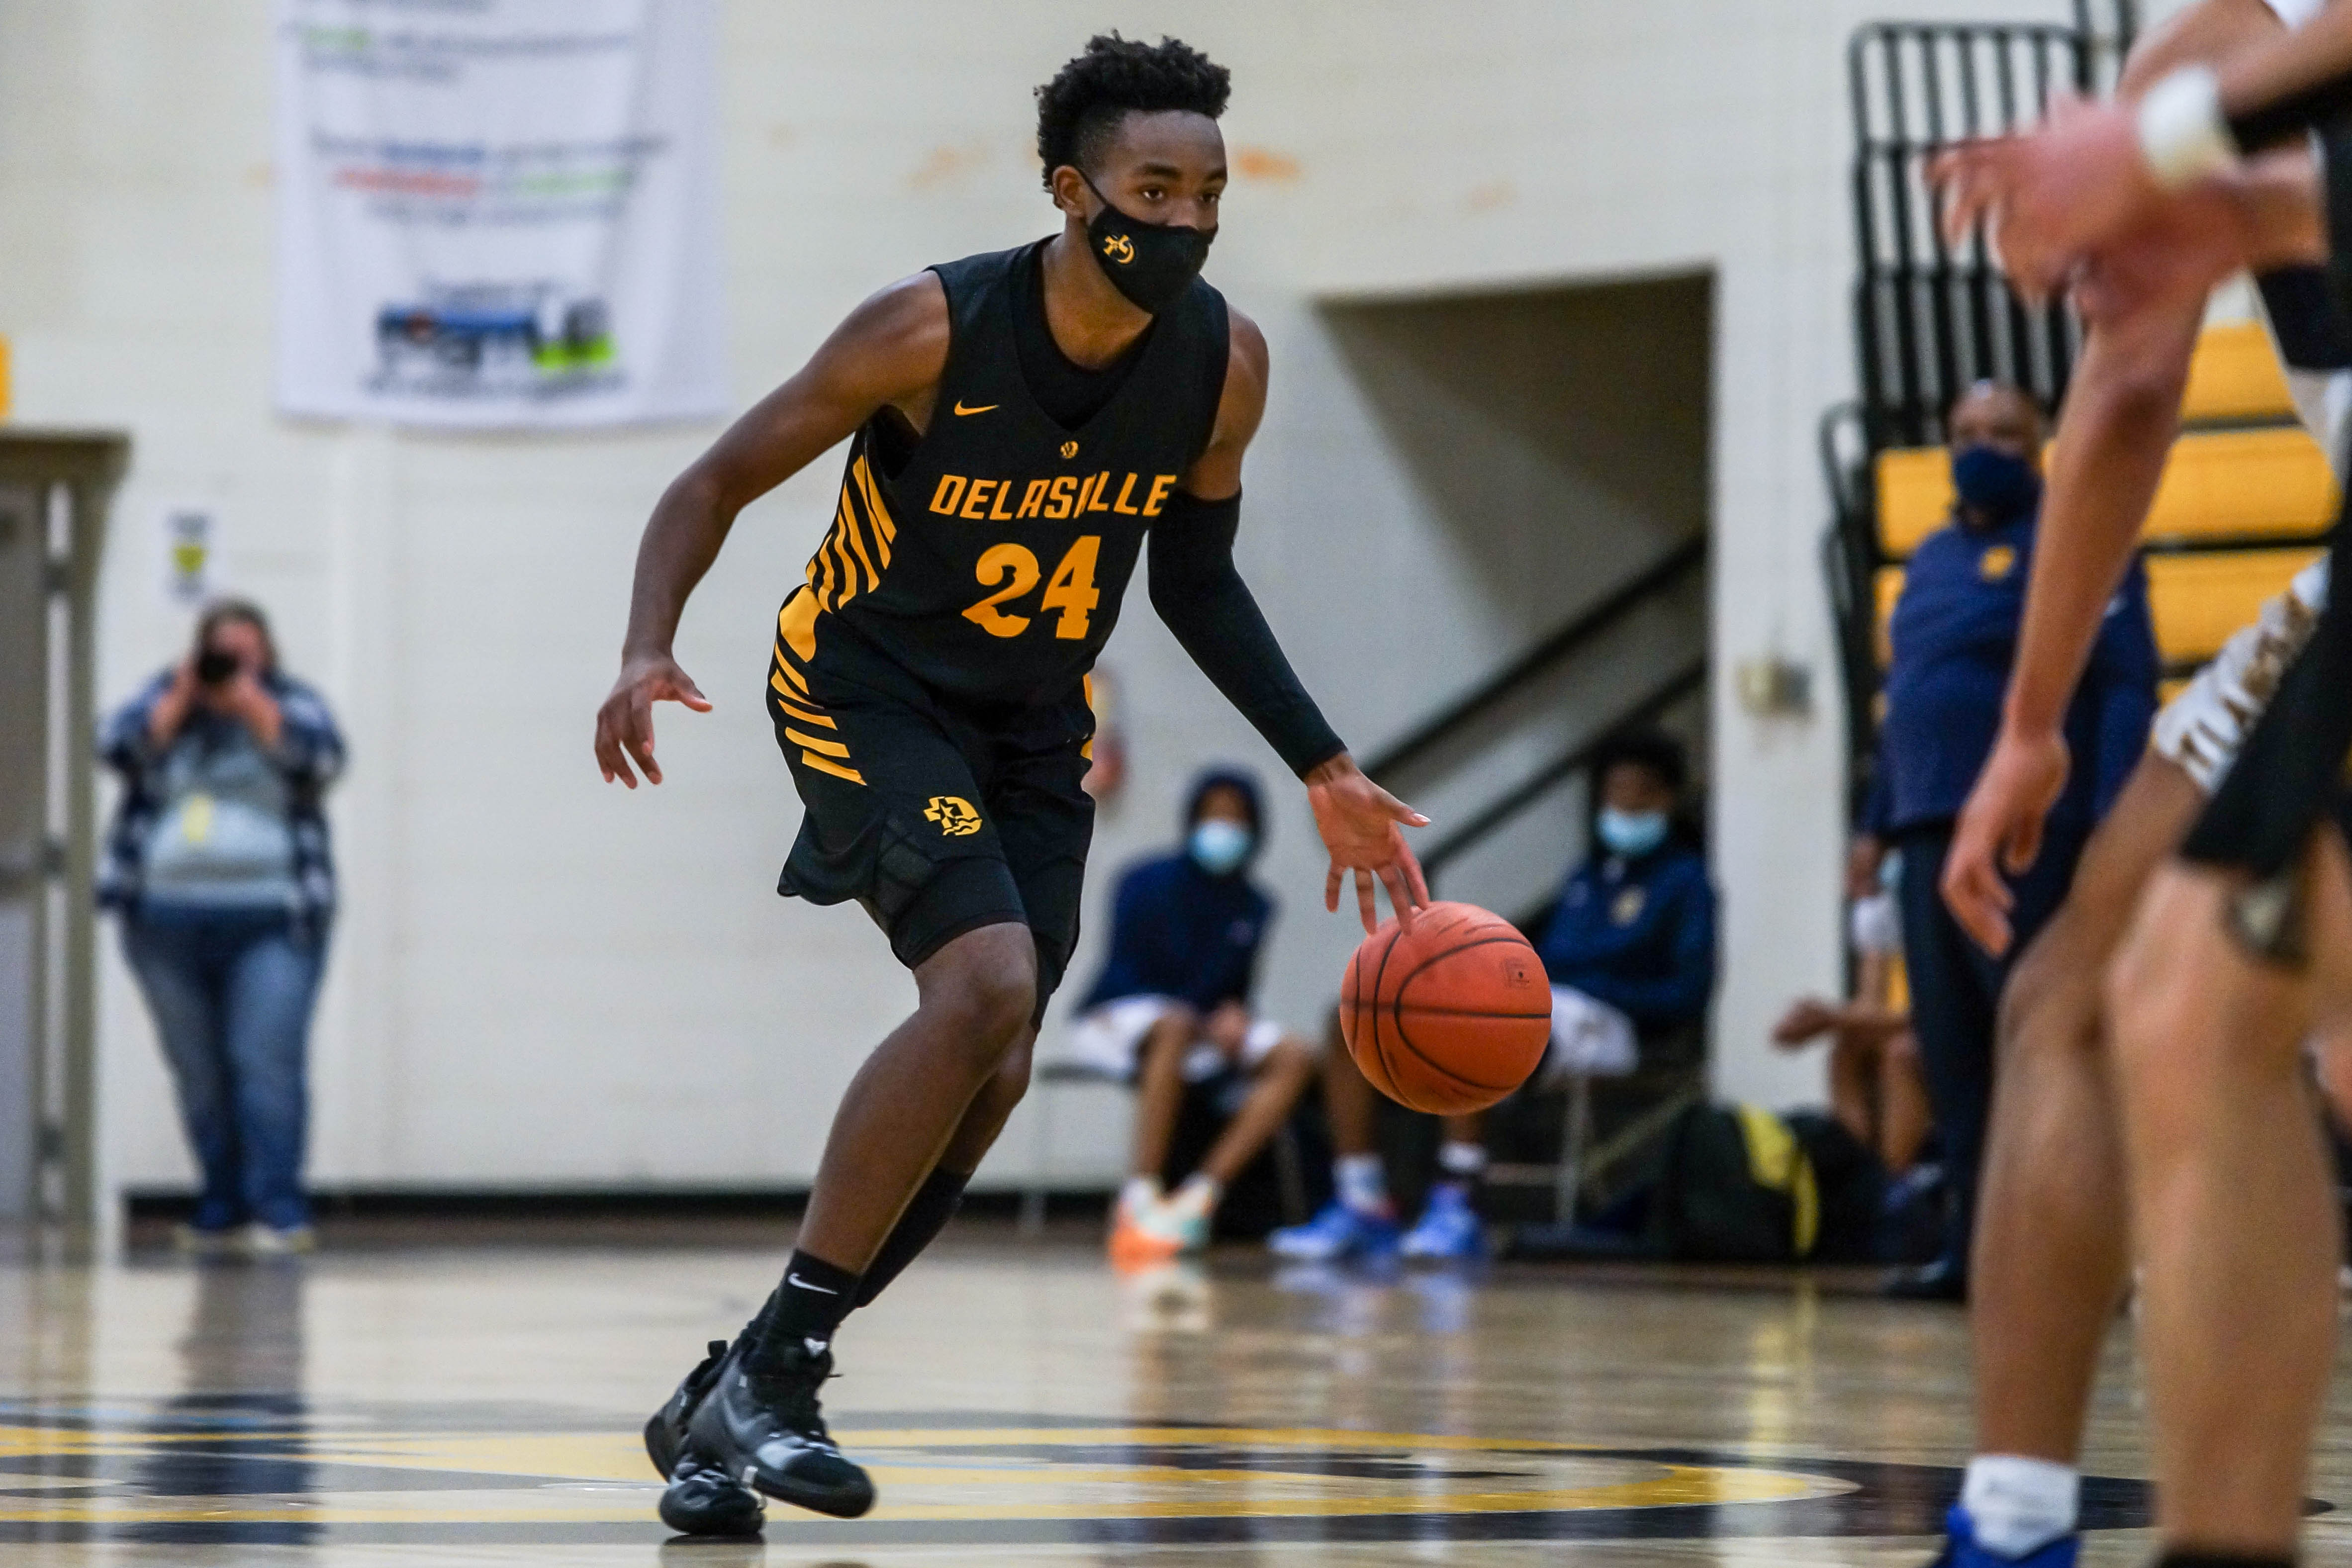 DeLaSalle senior Evan Boyd led his team in scoring with 20 points Tuesday night against Columbia Heights. Photo by Korey McDermott, SportsEngine